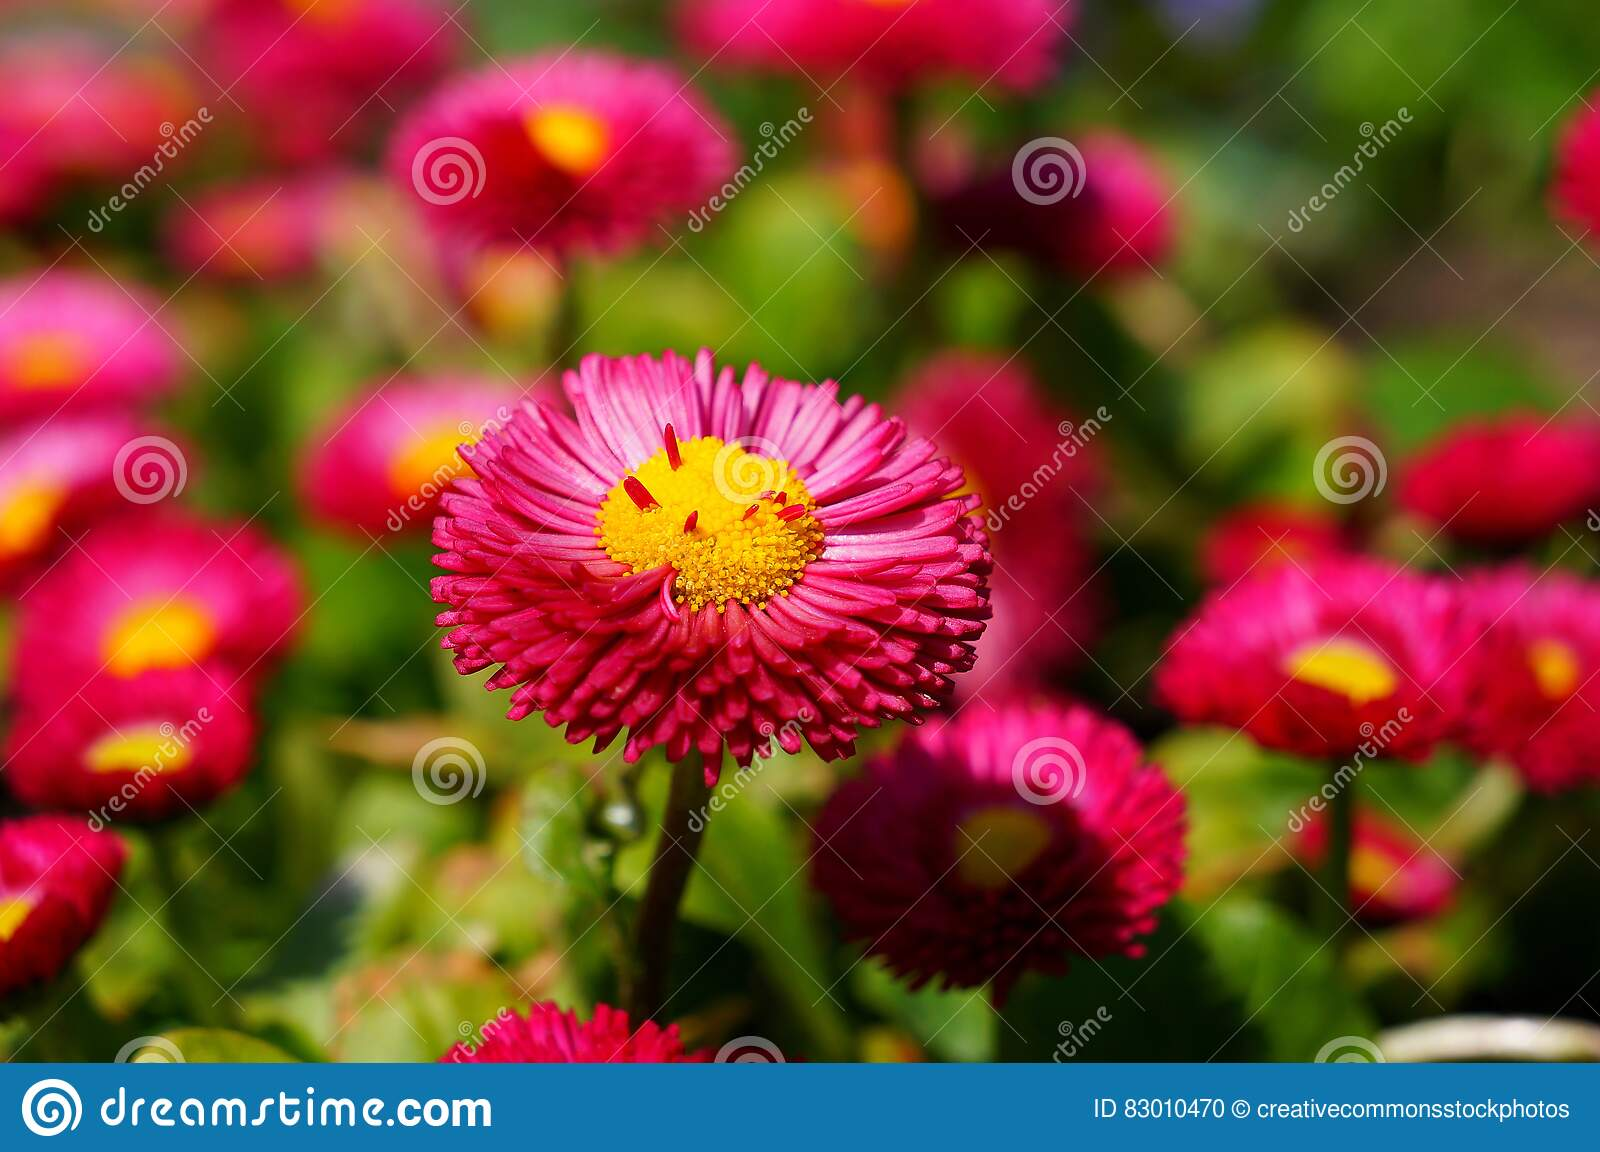 Download Pink and Yellow Flower stock photo. Image of photo, blossom - 83010470